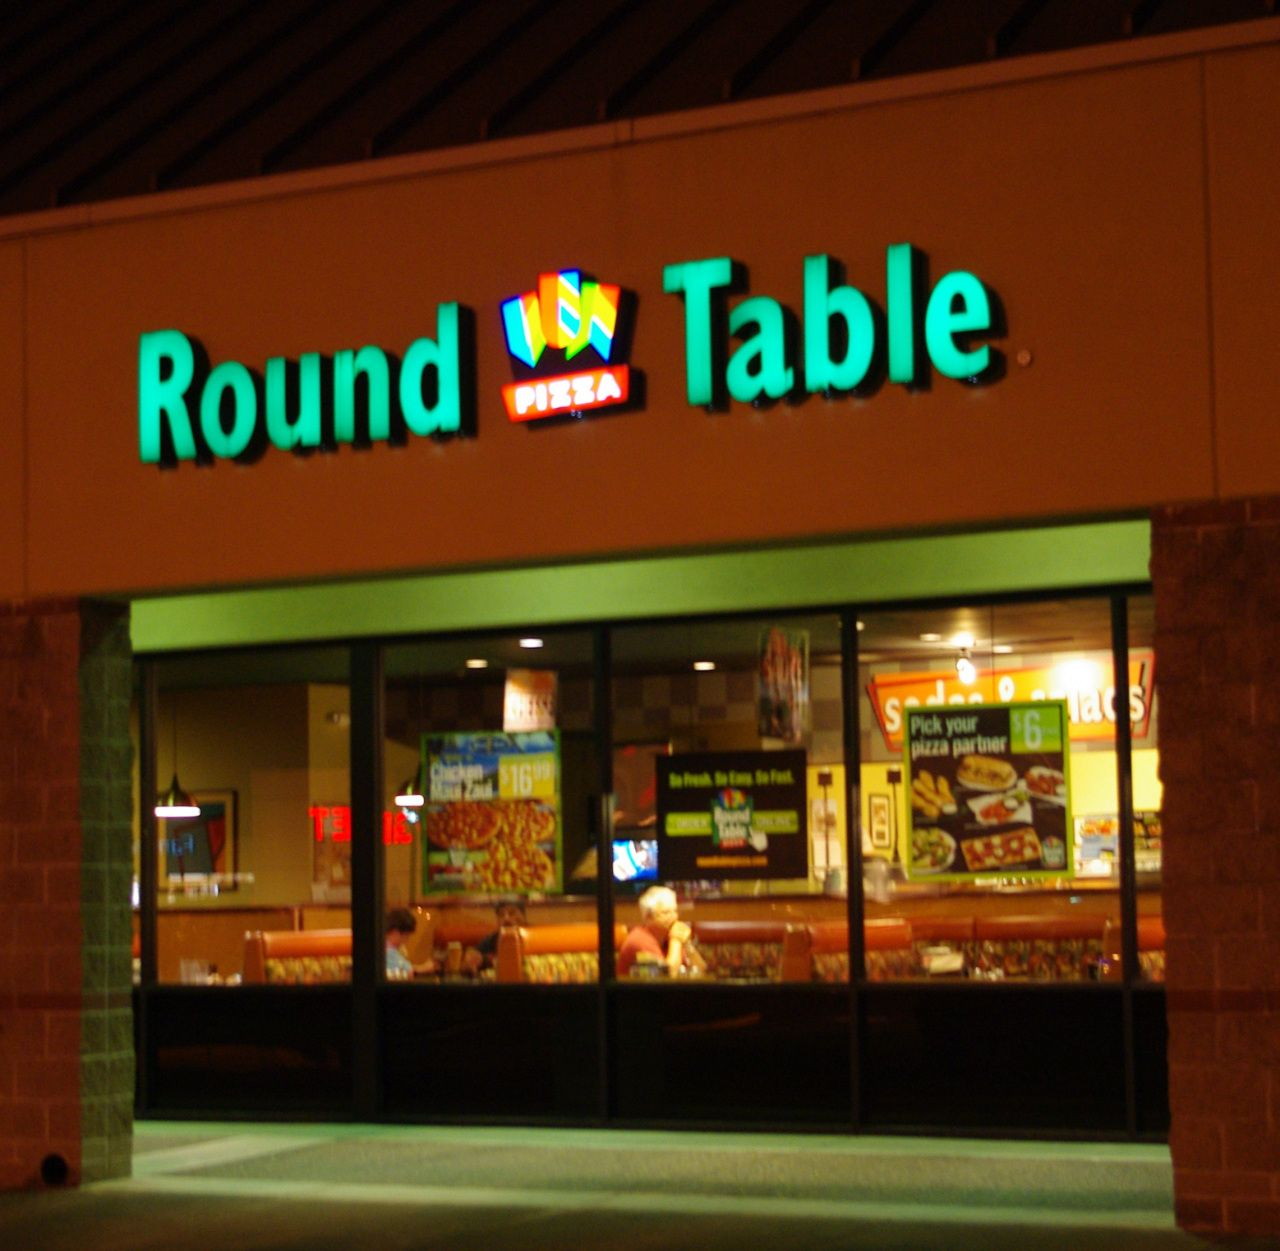 Table Pizza Lake Oswego Driving Directions To Round Table Pizza Lake Oswego  United States .